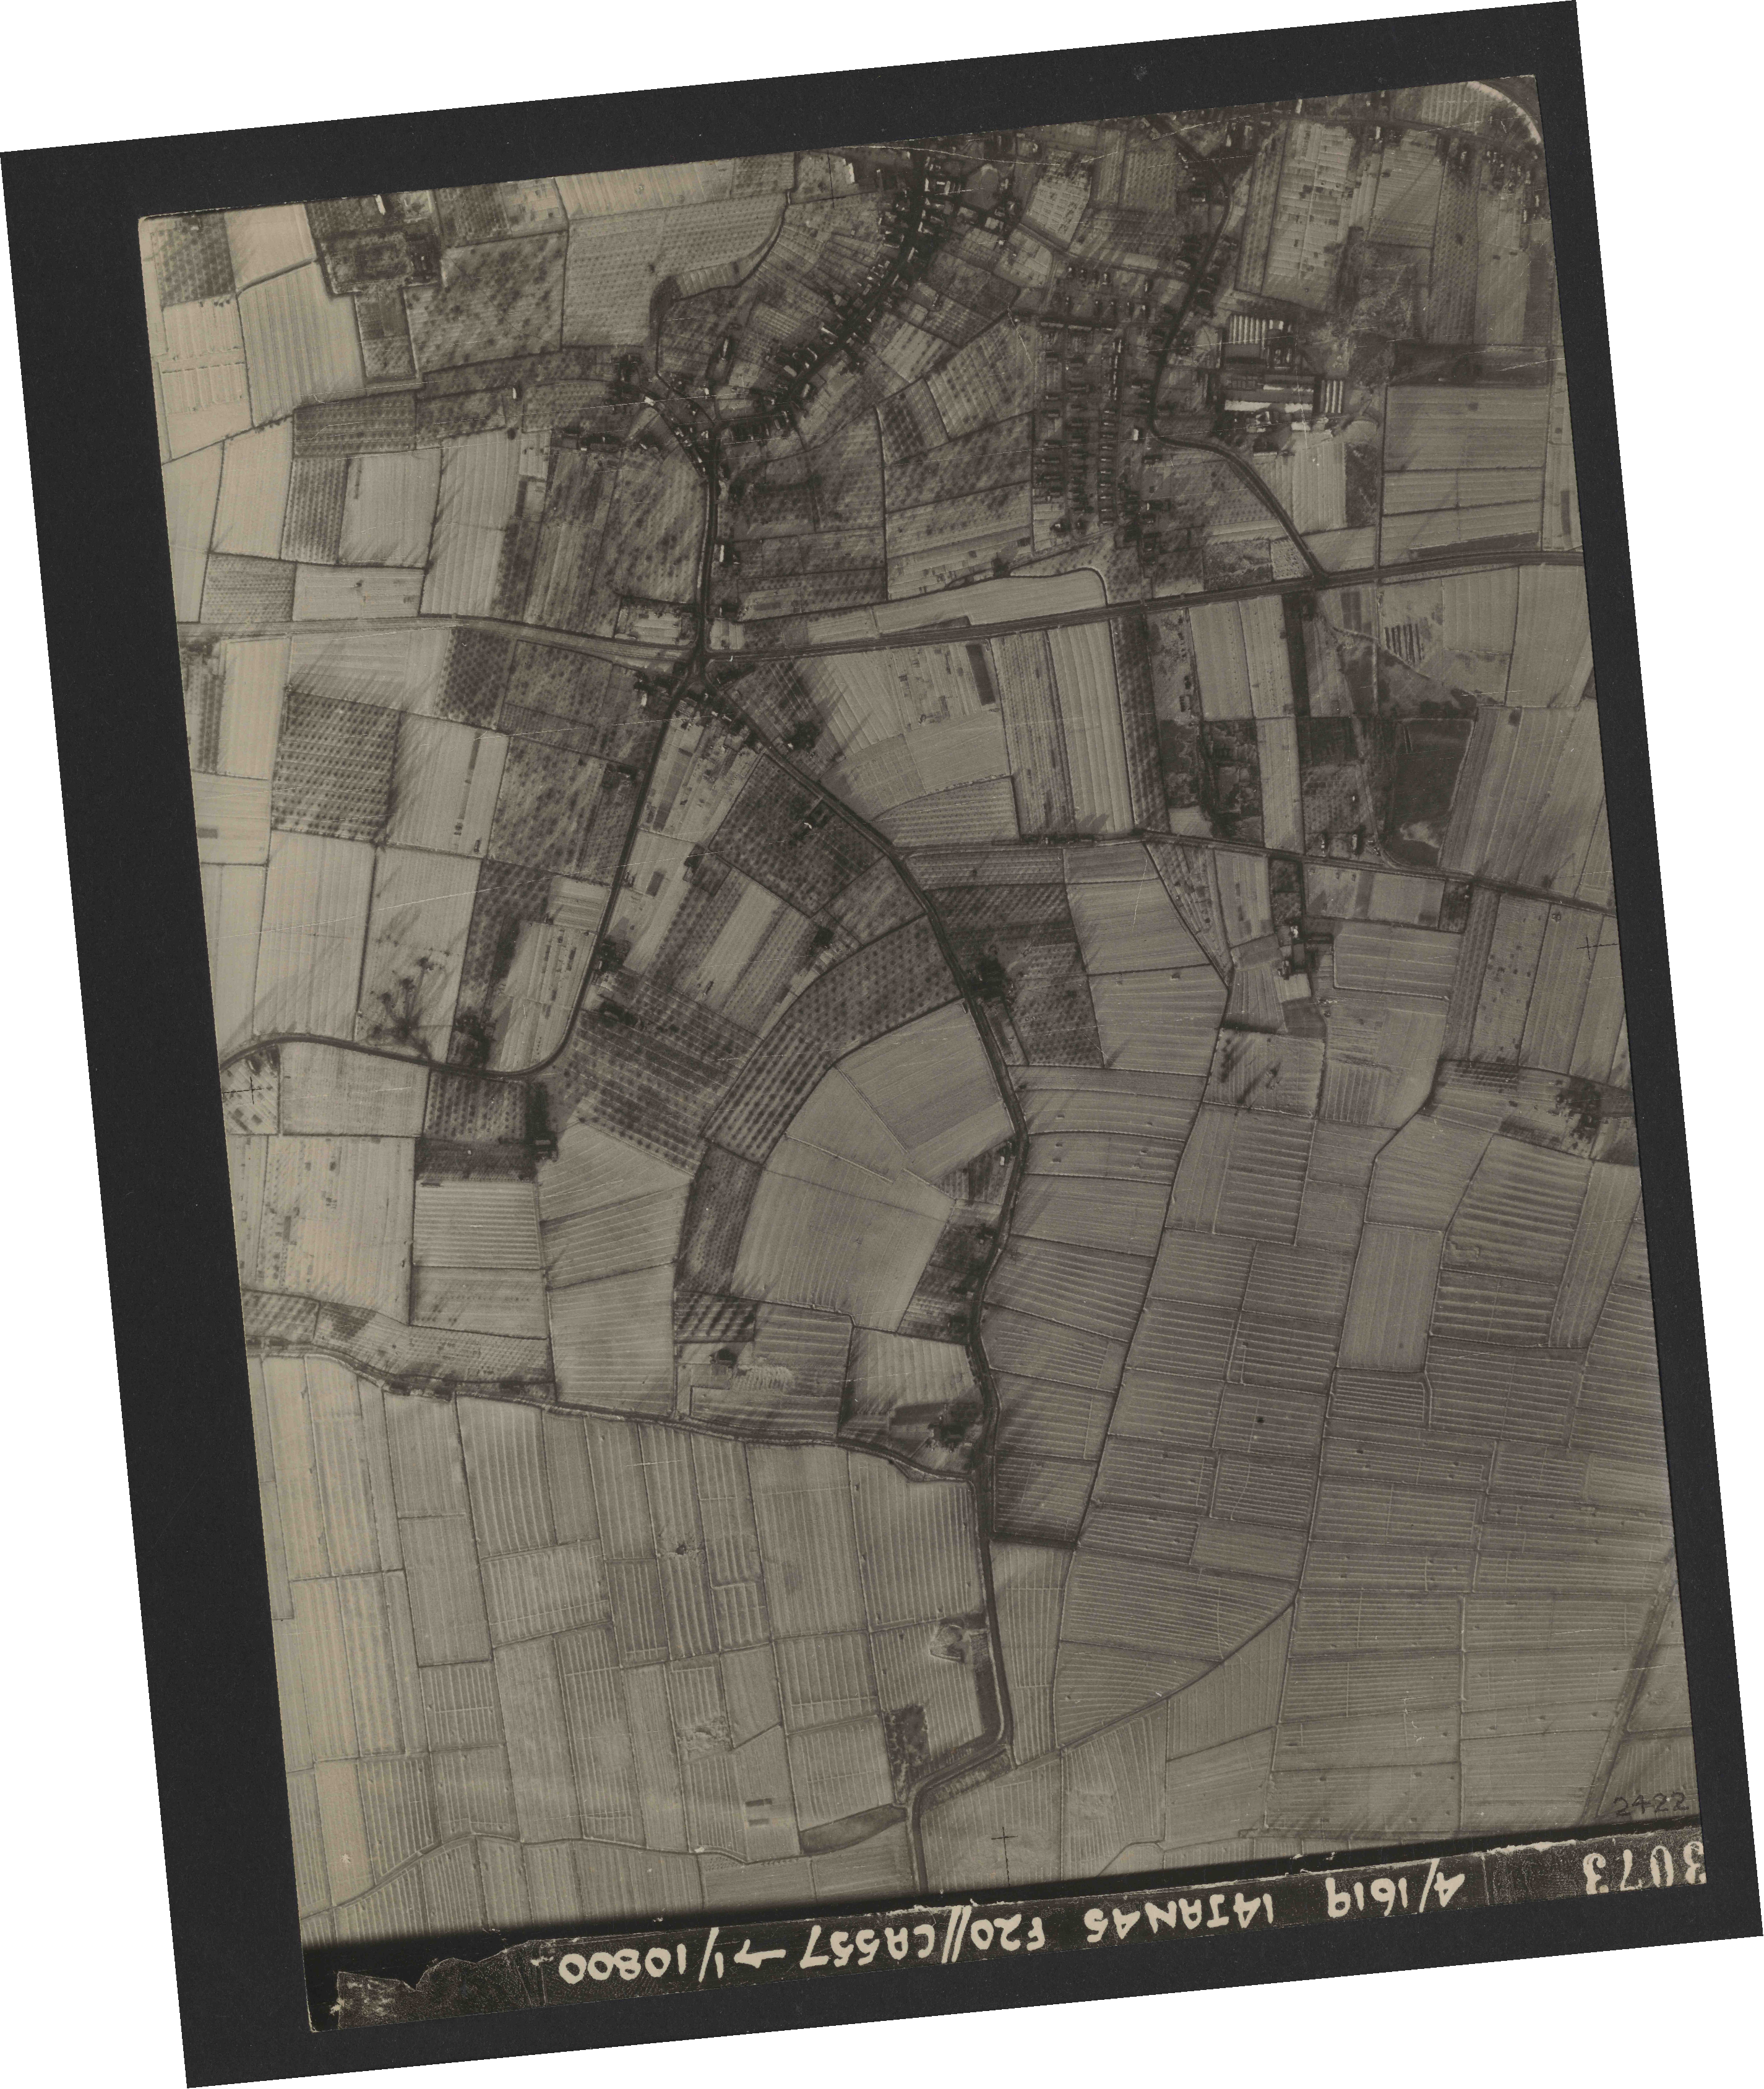 Collection RAF aerial photos 1940-1945 - flight 291, run 04, photo 3073